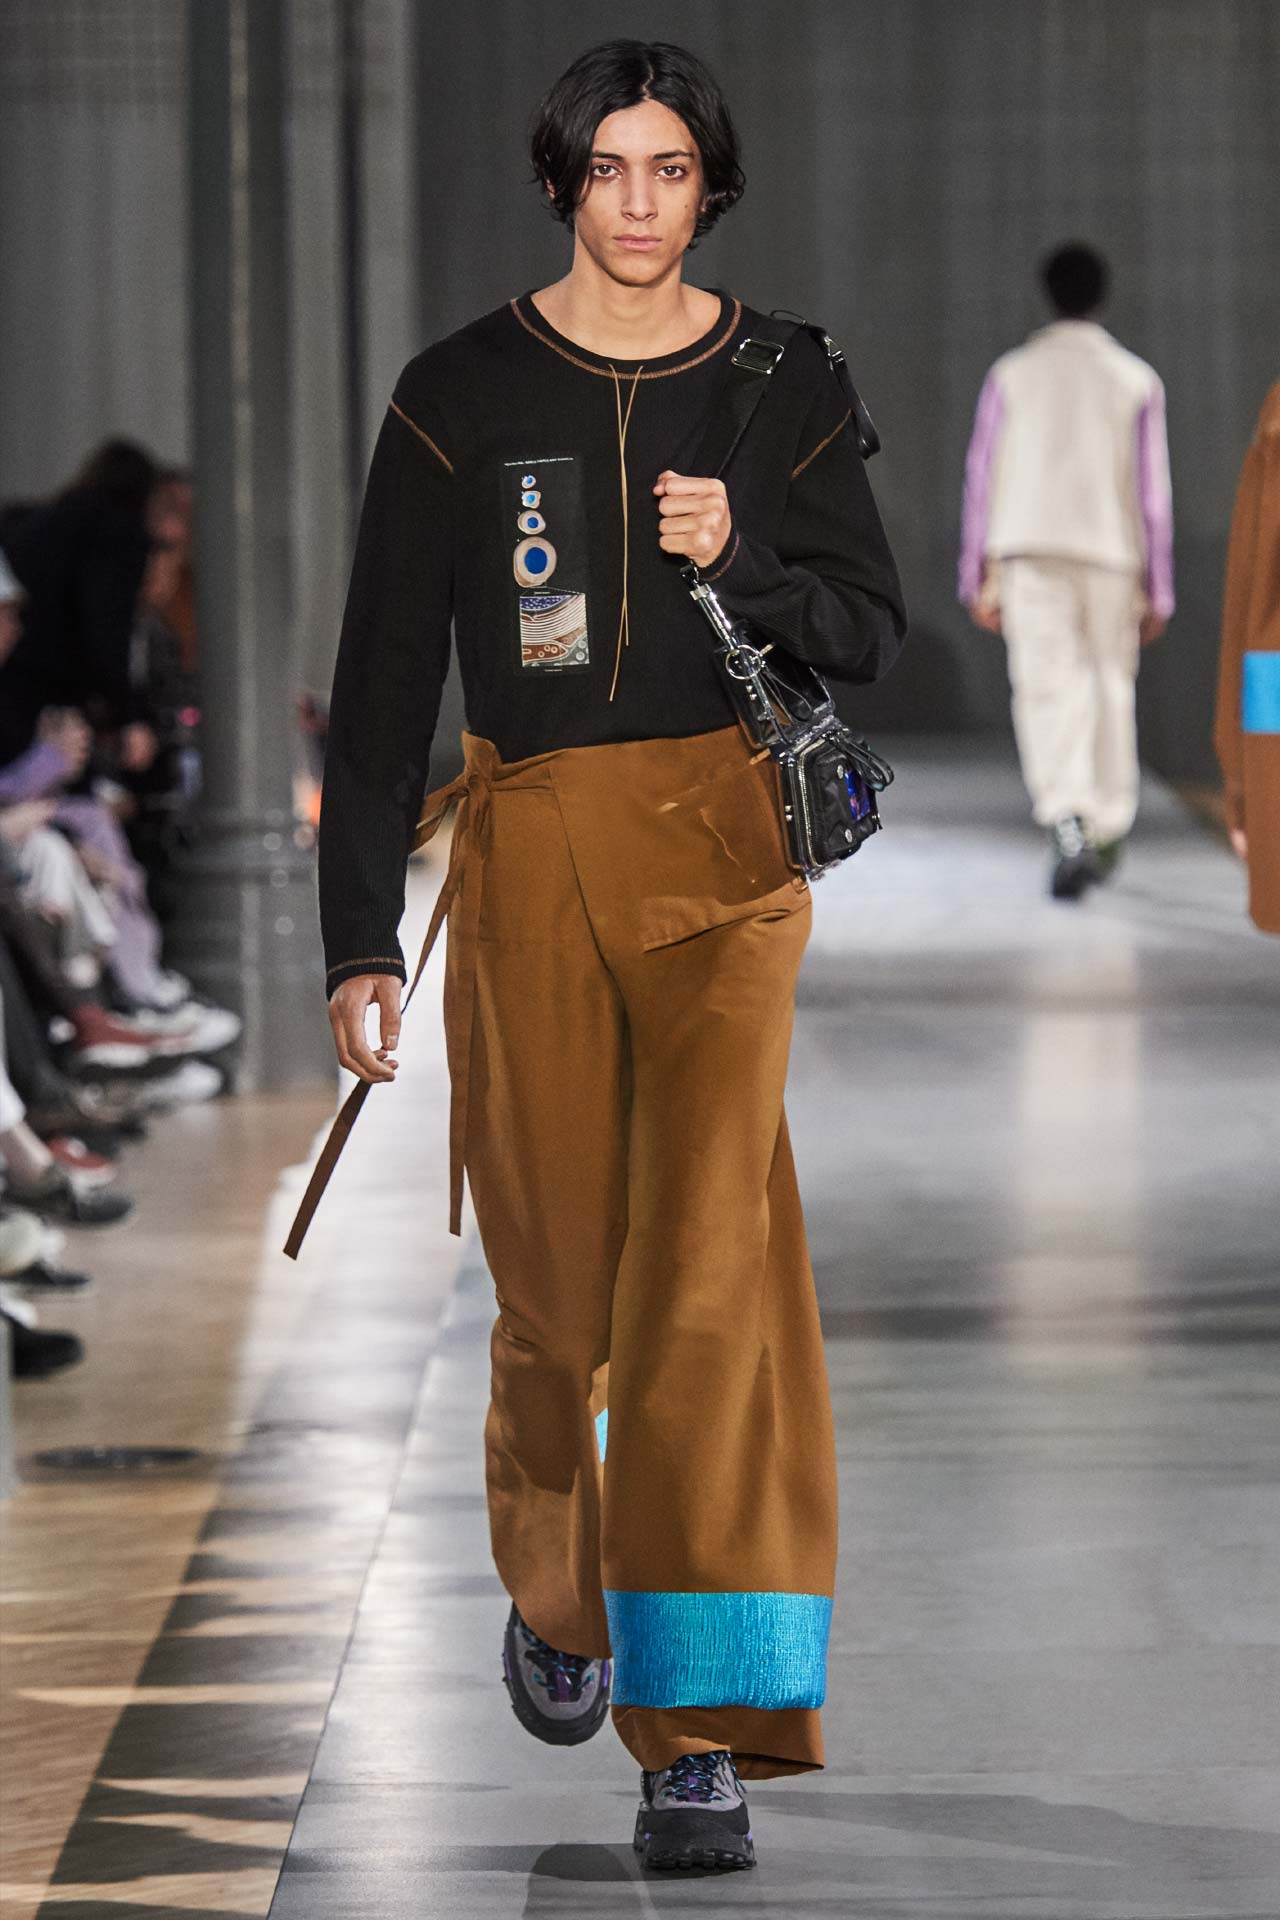 Look Fall/Winter 2019, image 26